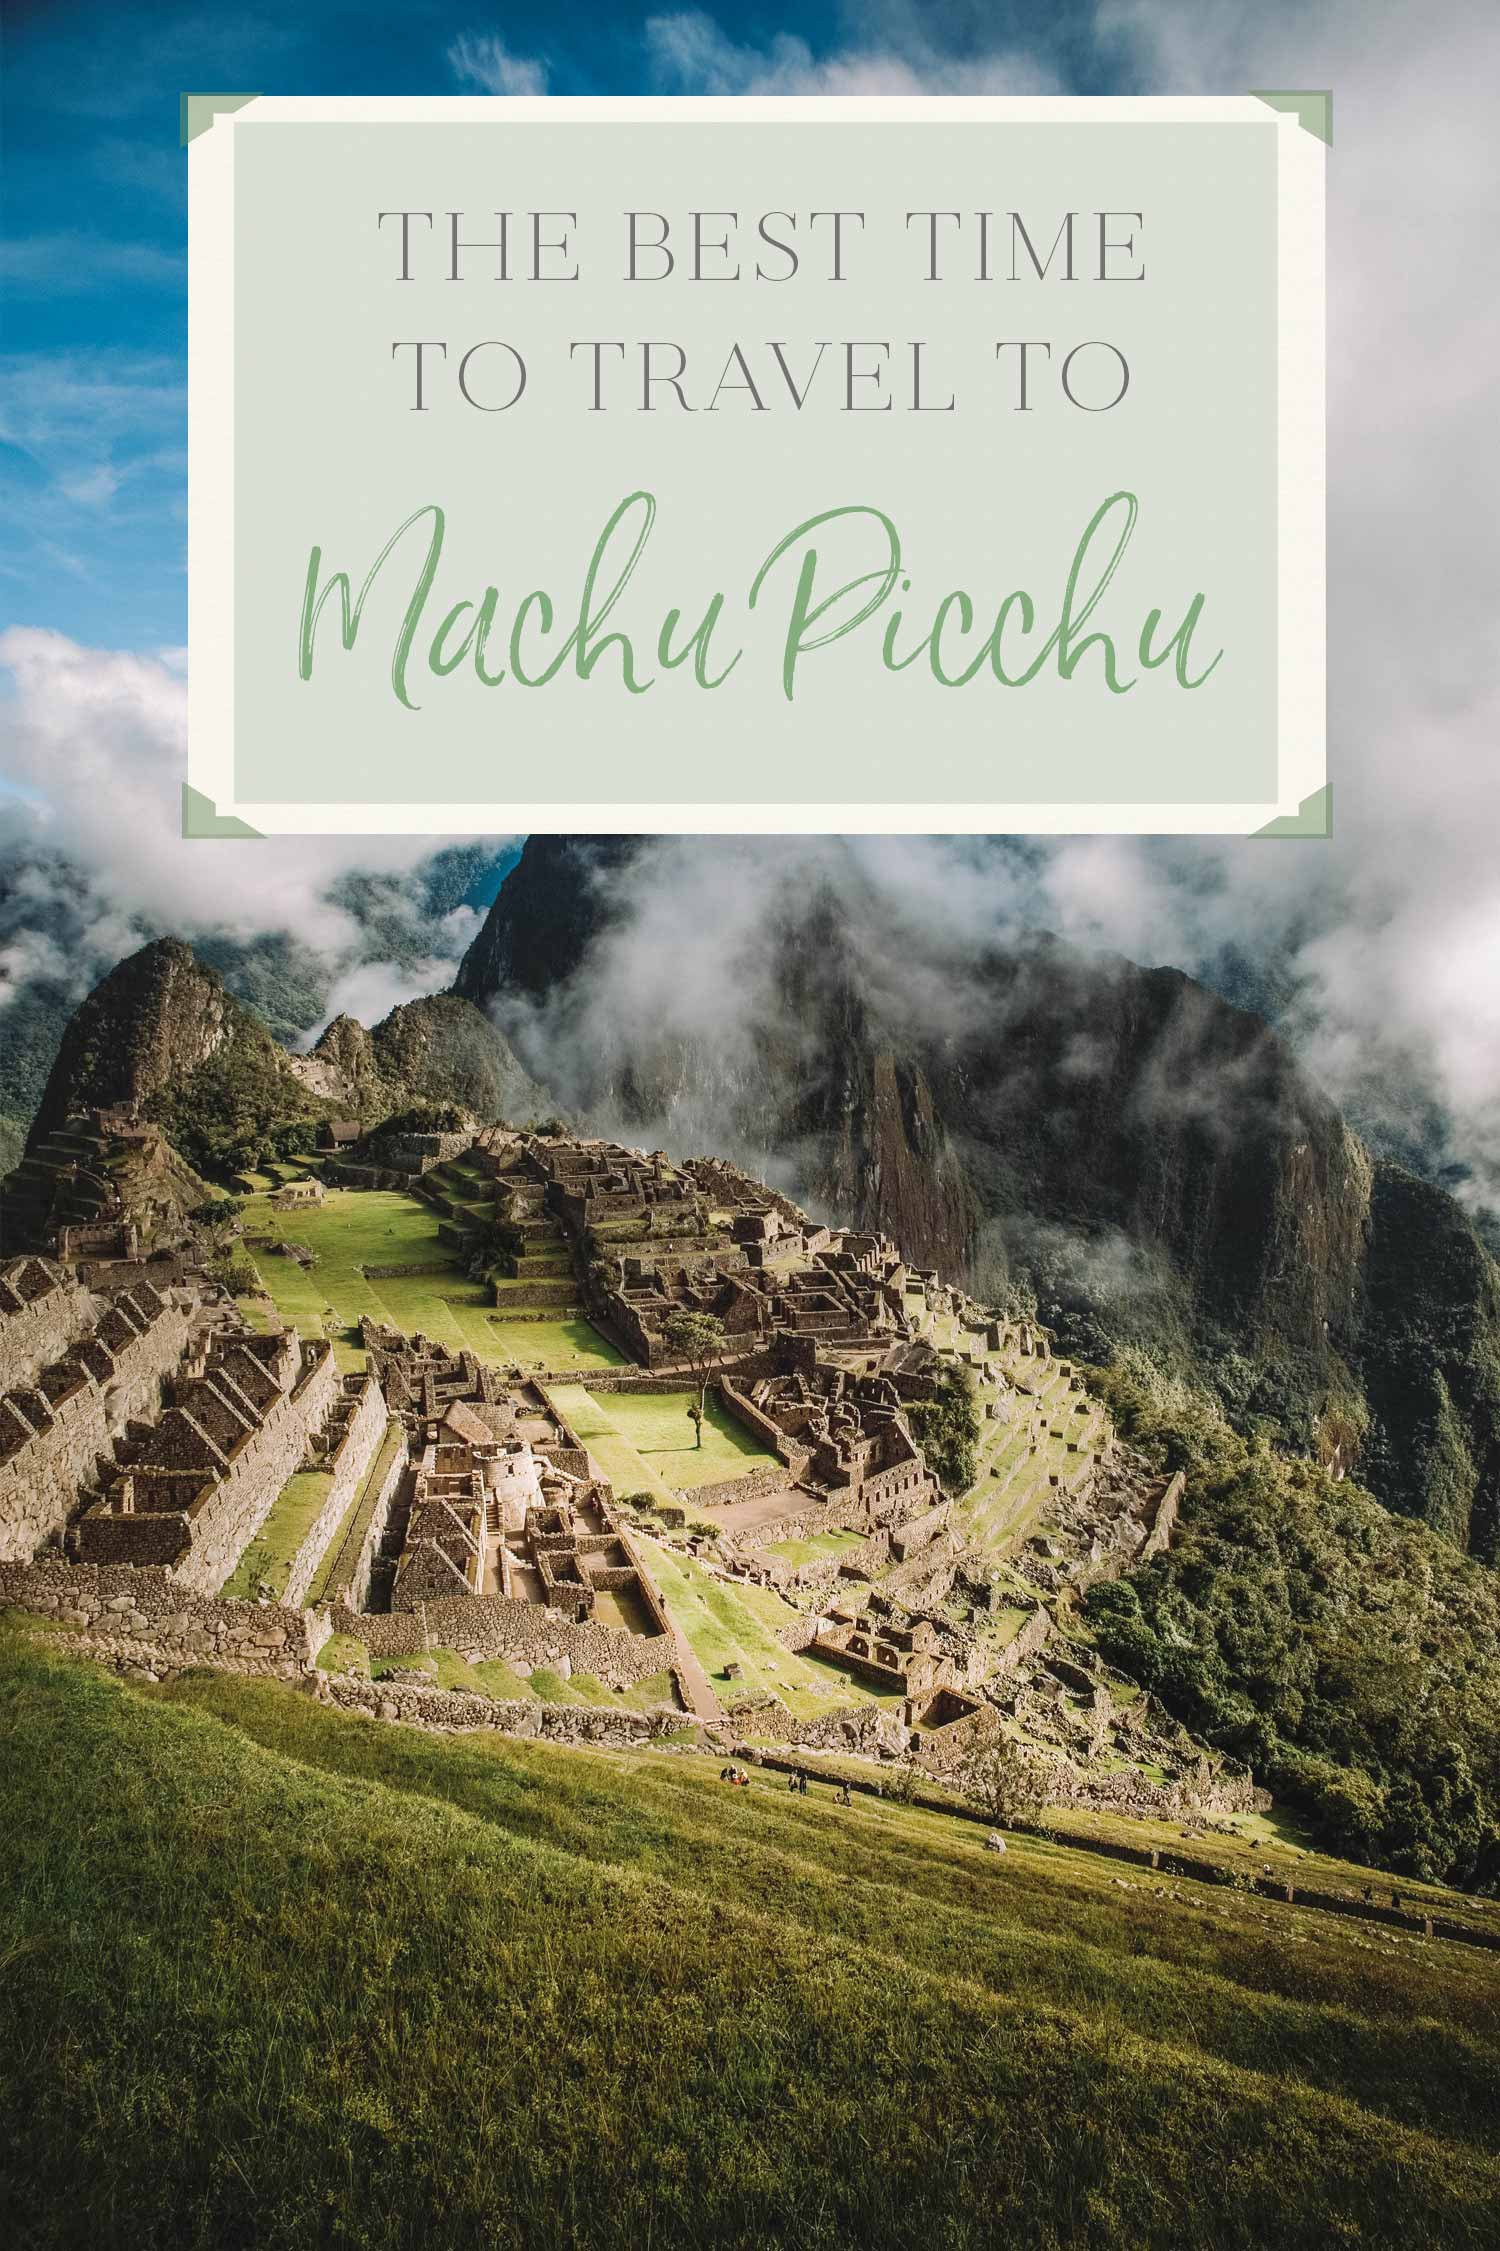 Best time to travel to Machu Picchu